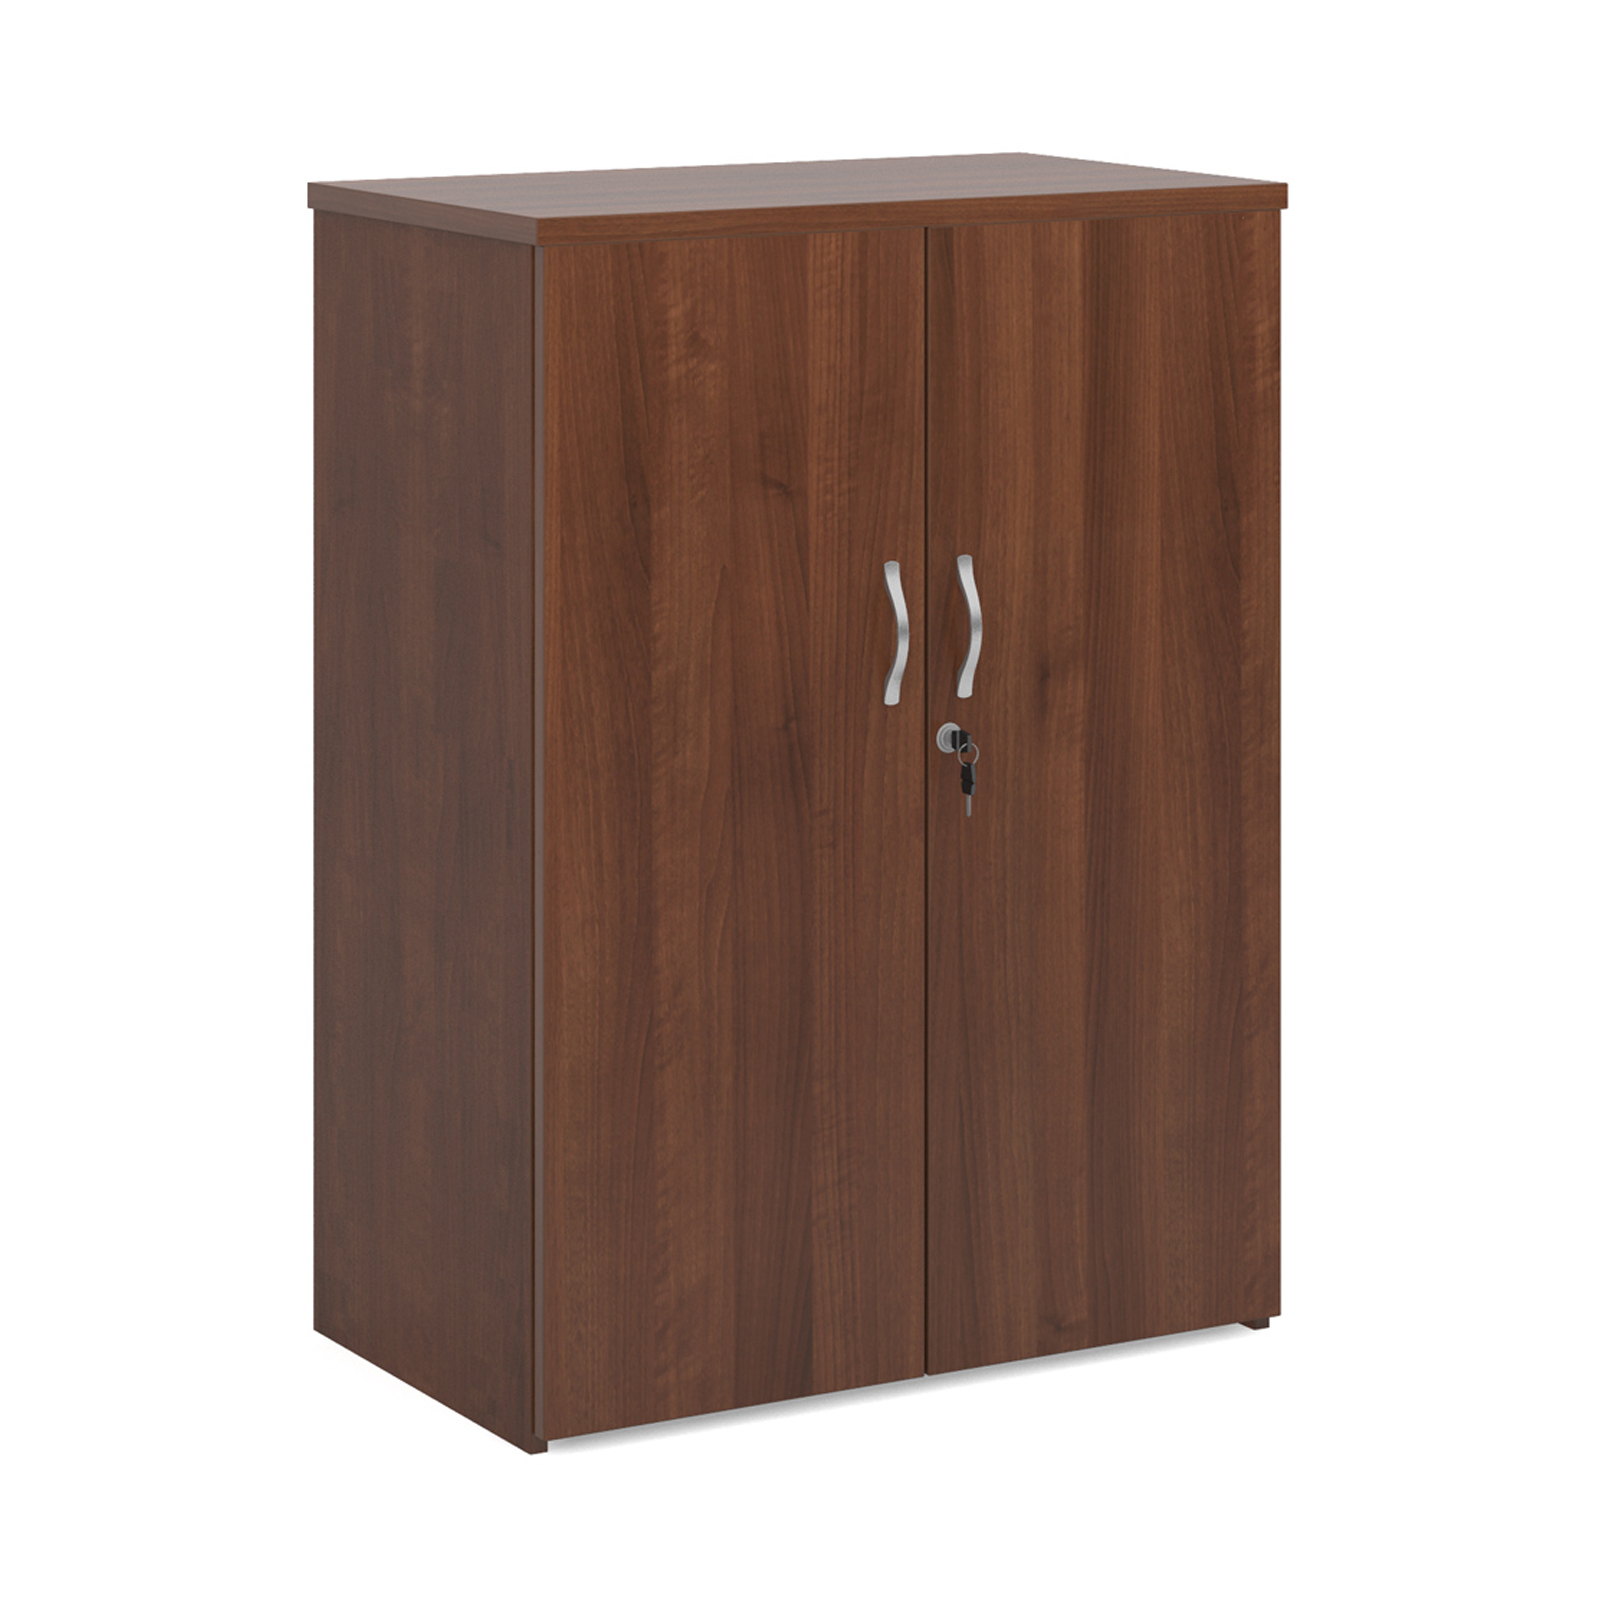 Up to 1200mm High Universal double door cupboard 1090mm high with 2 shelves - walnut